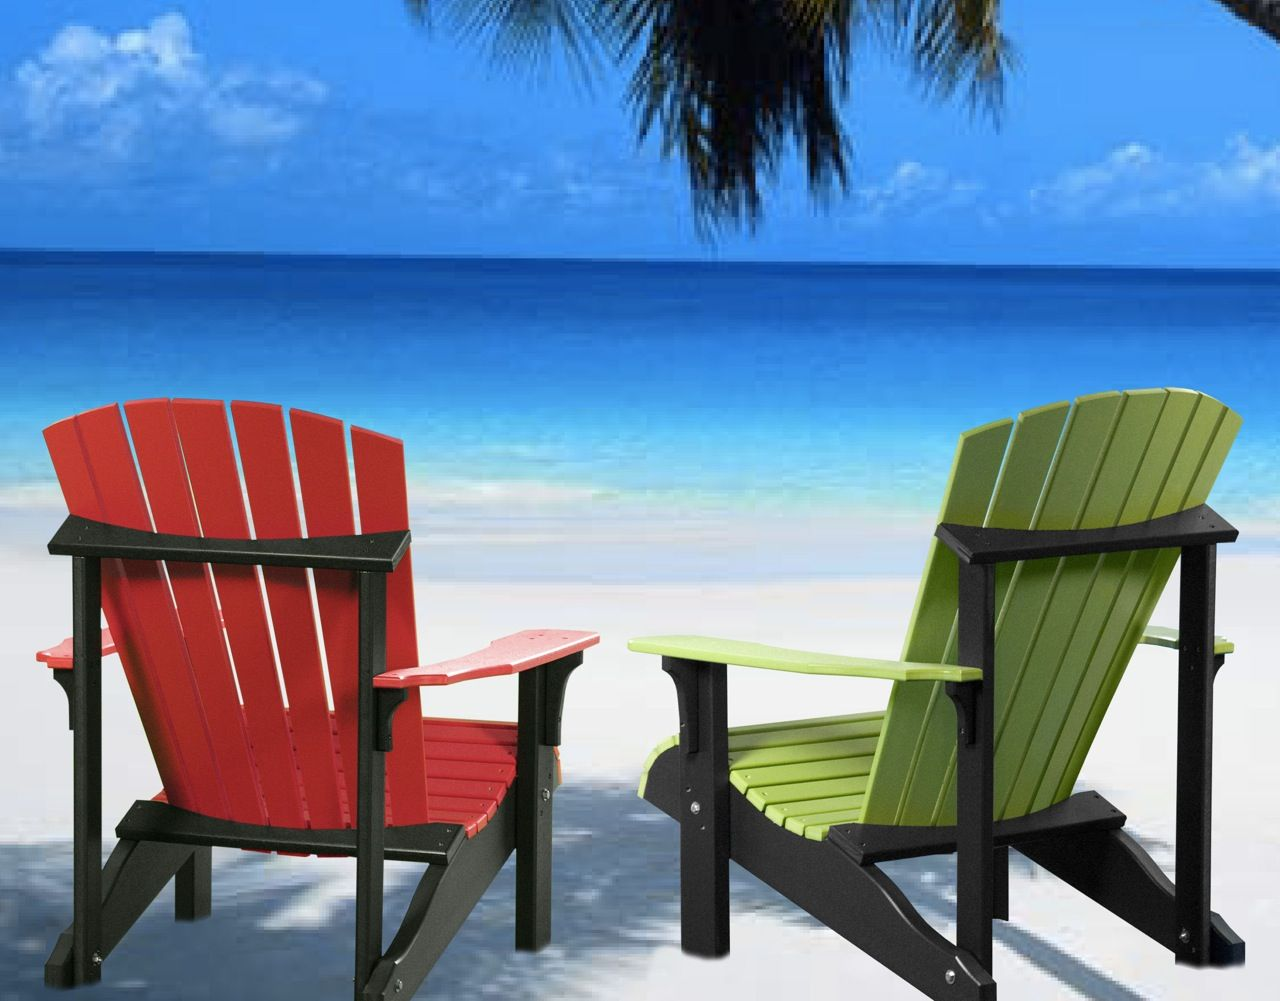 Superieur Deluxe Adirondack Chairs On Beach